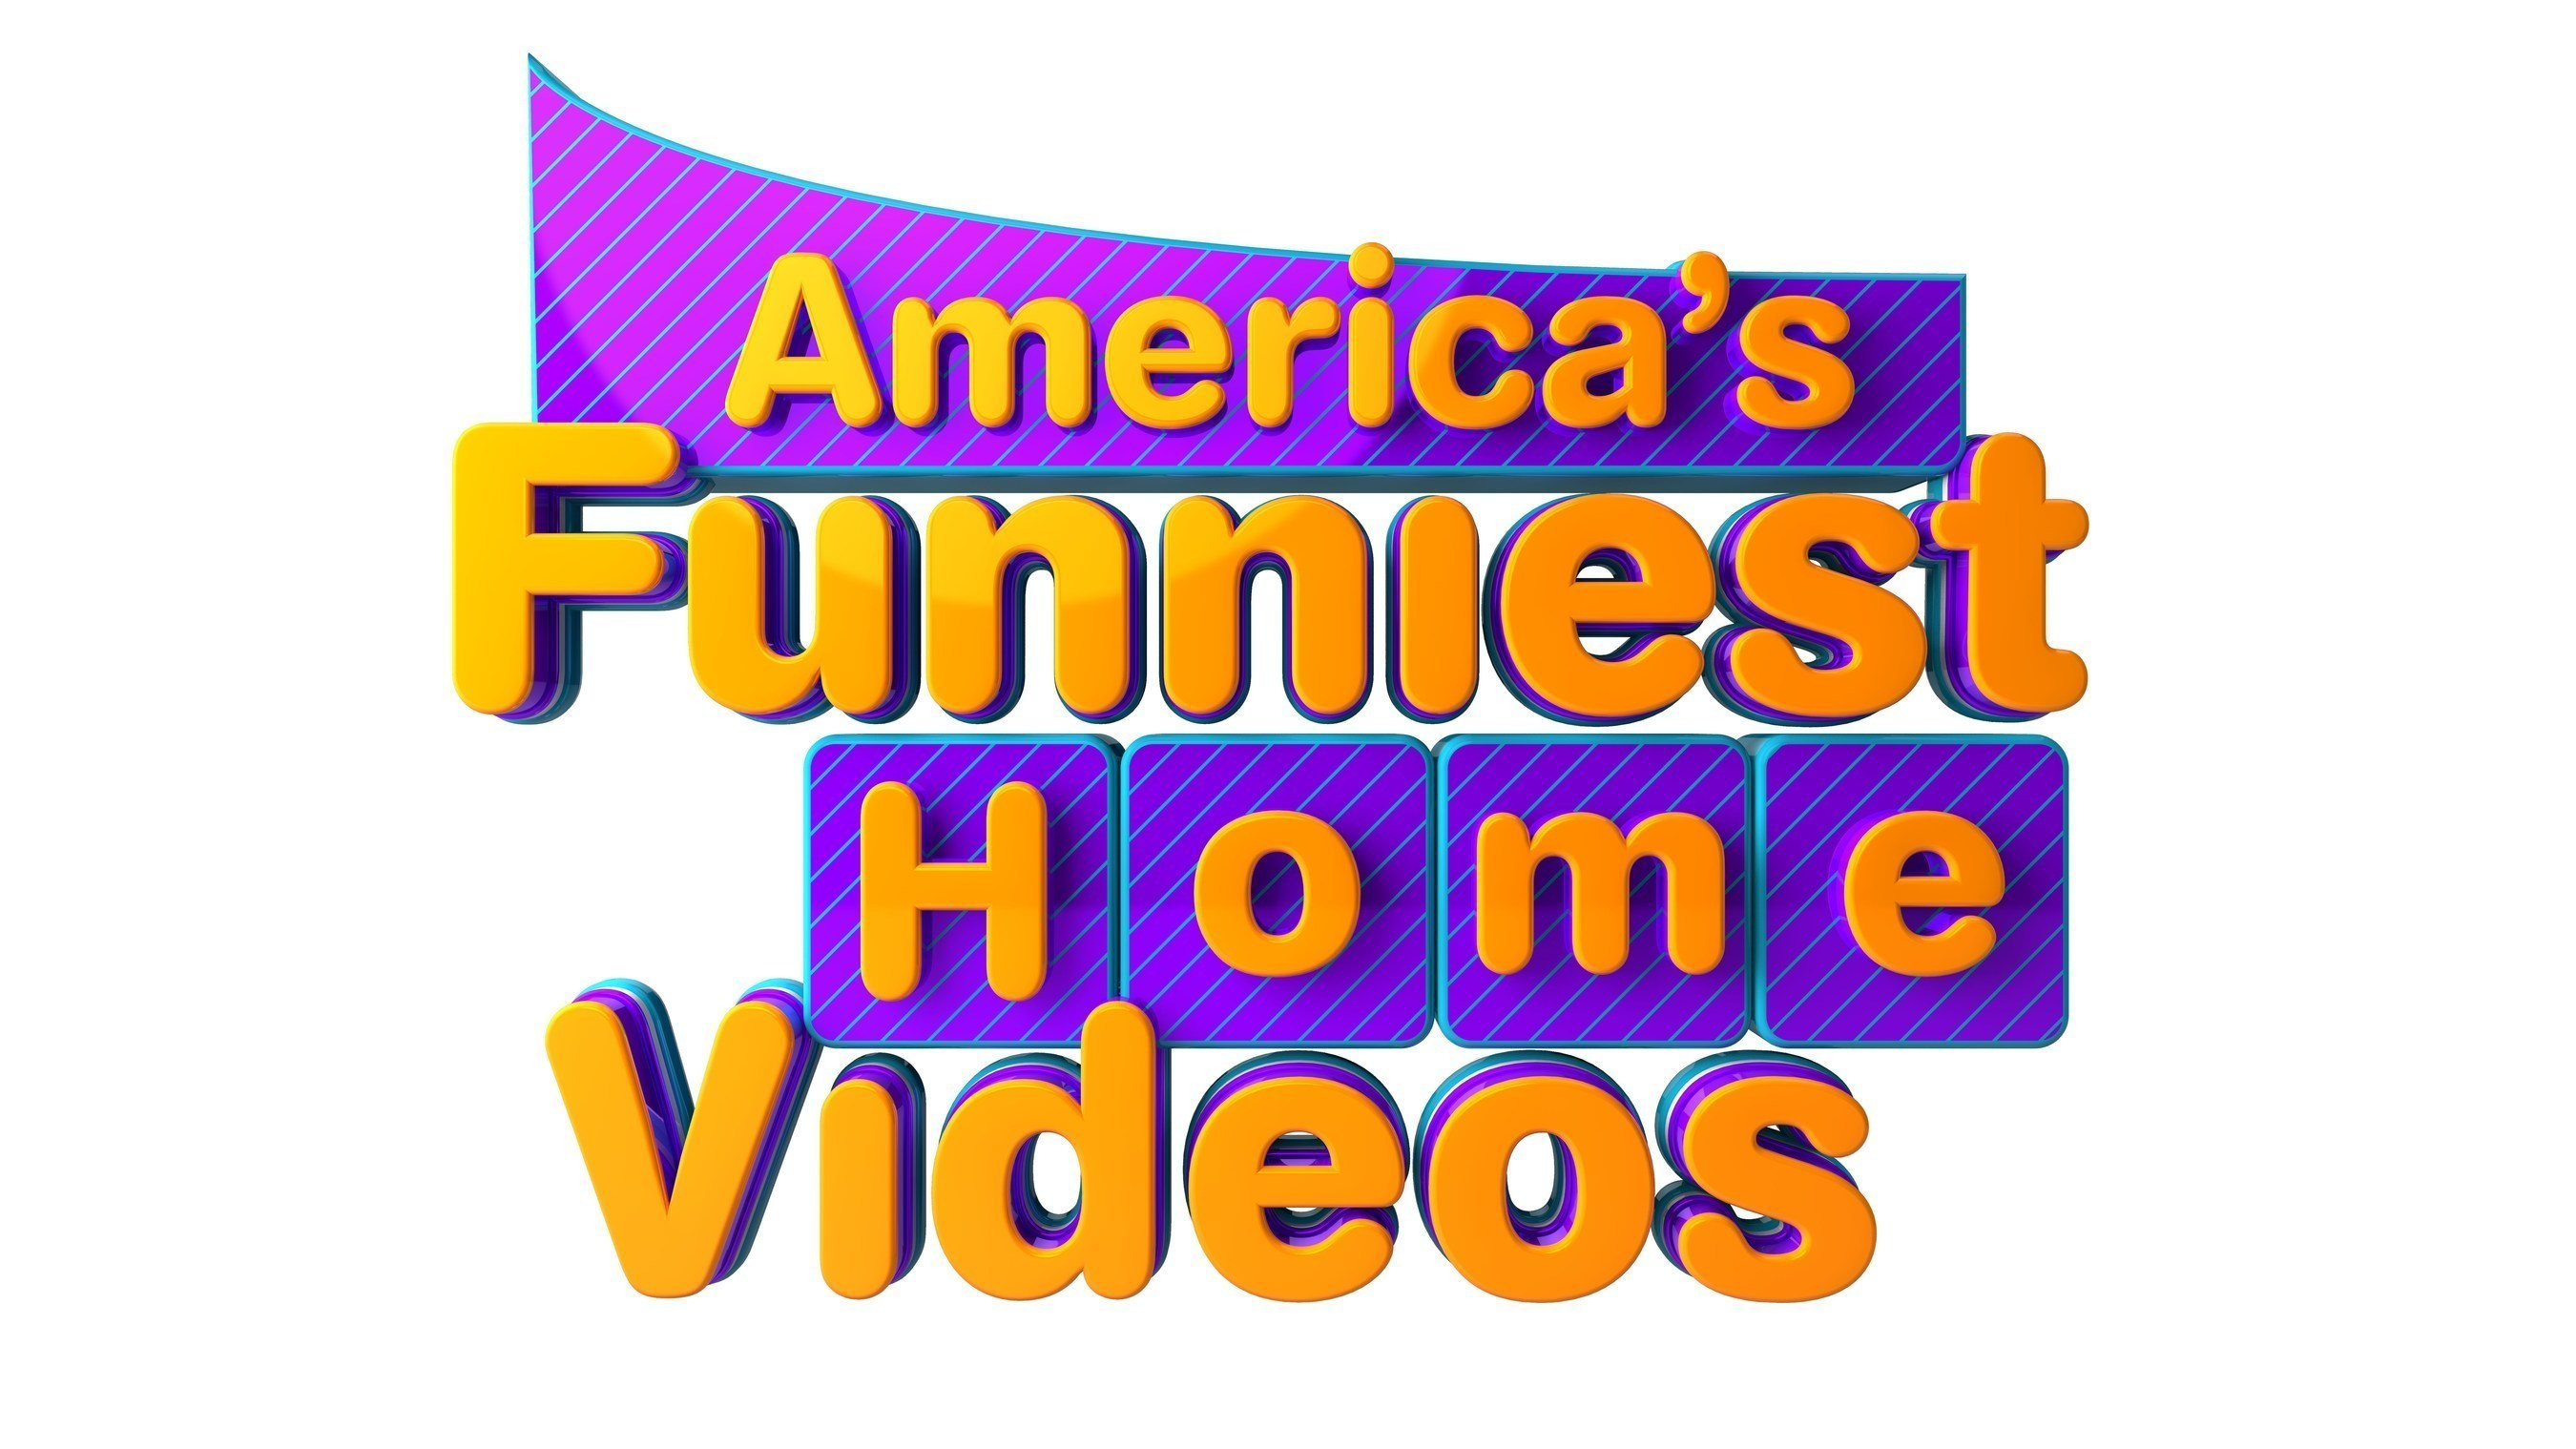 America's Funniest Home Videos logo